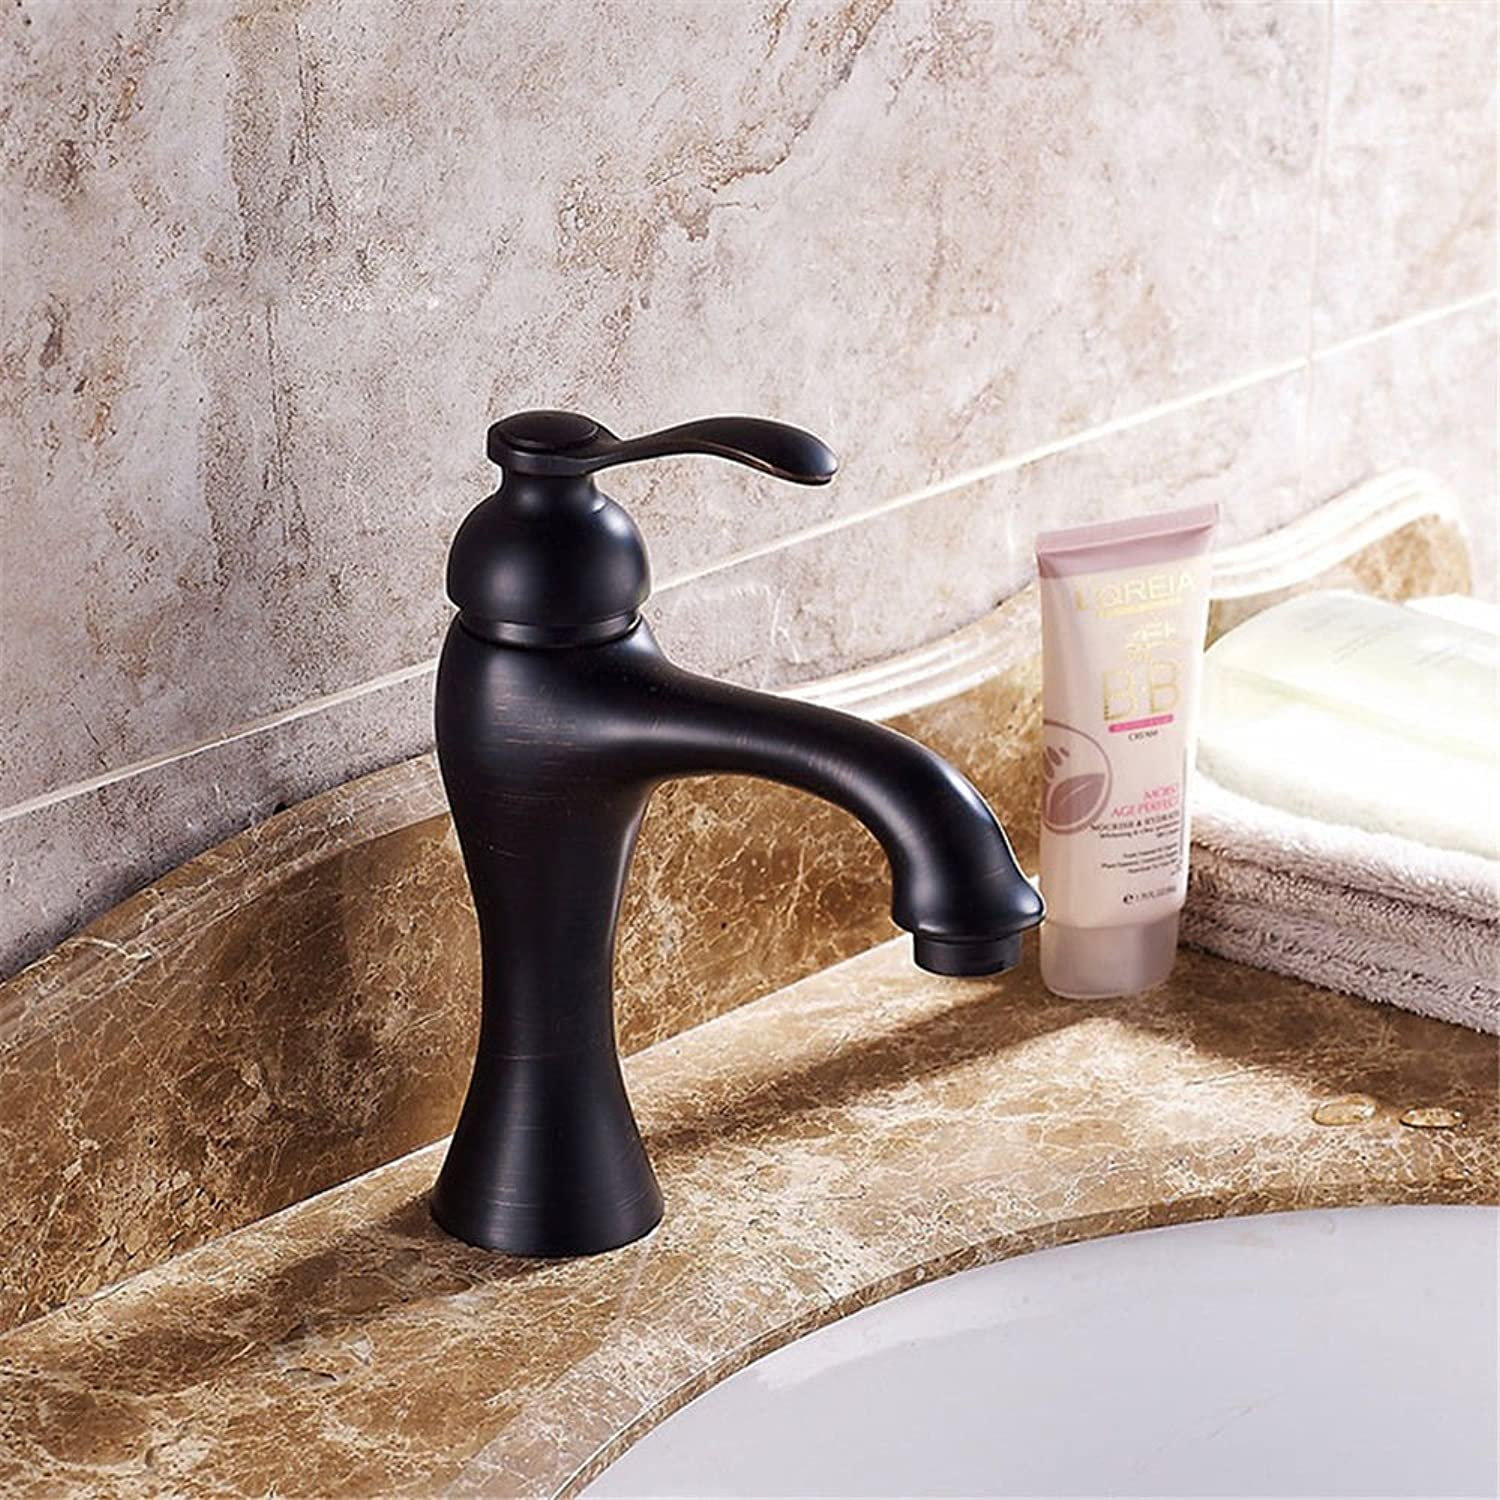 IJIAHOMIE Style of Bathroom Sink Taps, Bathroom Faucets,Waterfall Basin Sink Sink Sink Mixer Tap Modern Basin wash Basin Copper Blackbronze hot and Cold Single Hole Single Water Saving 6580d1